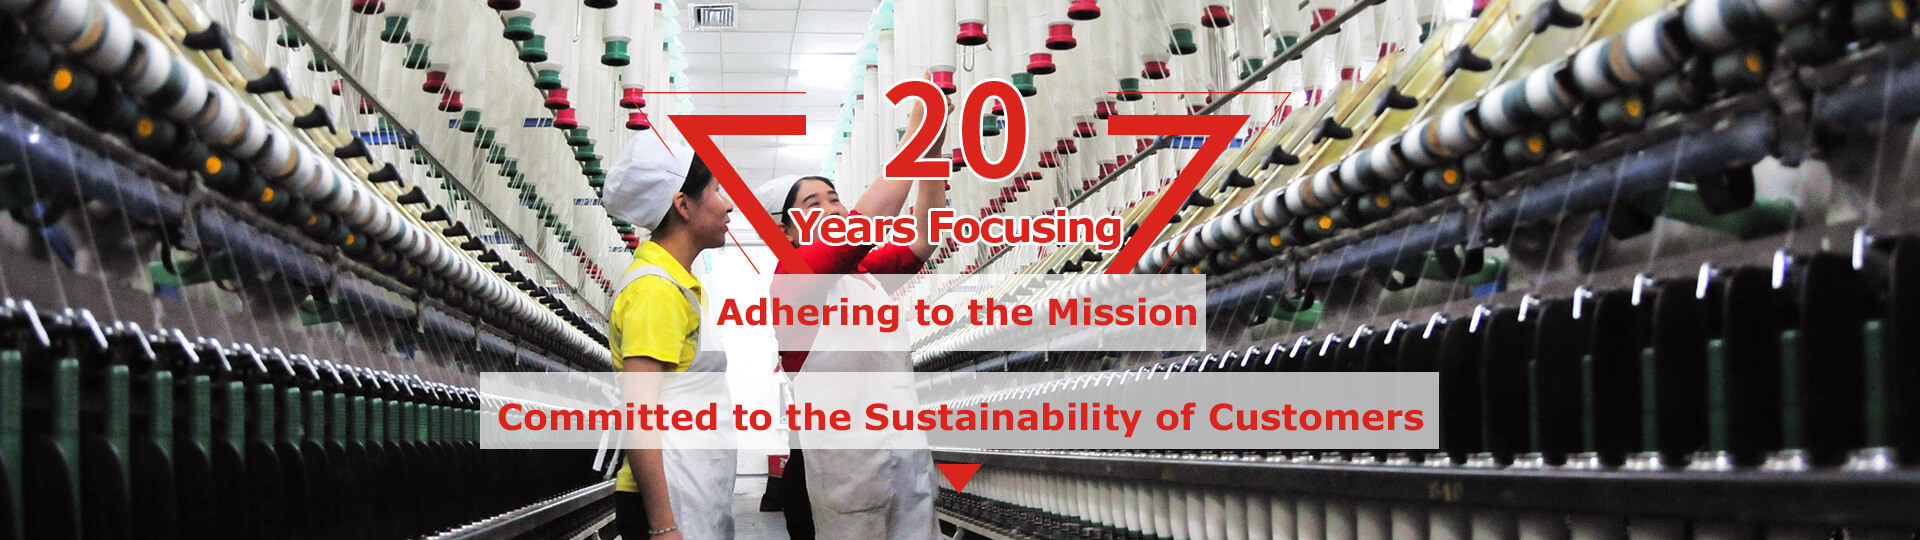 Adhering to the Mission - Committed to the Sustain